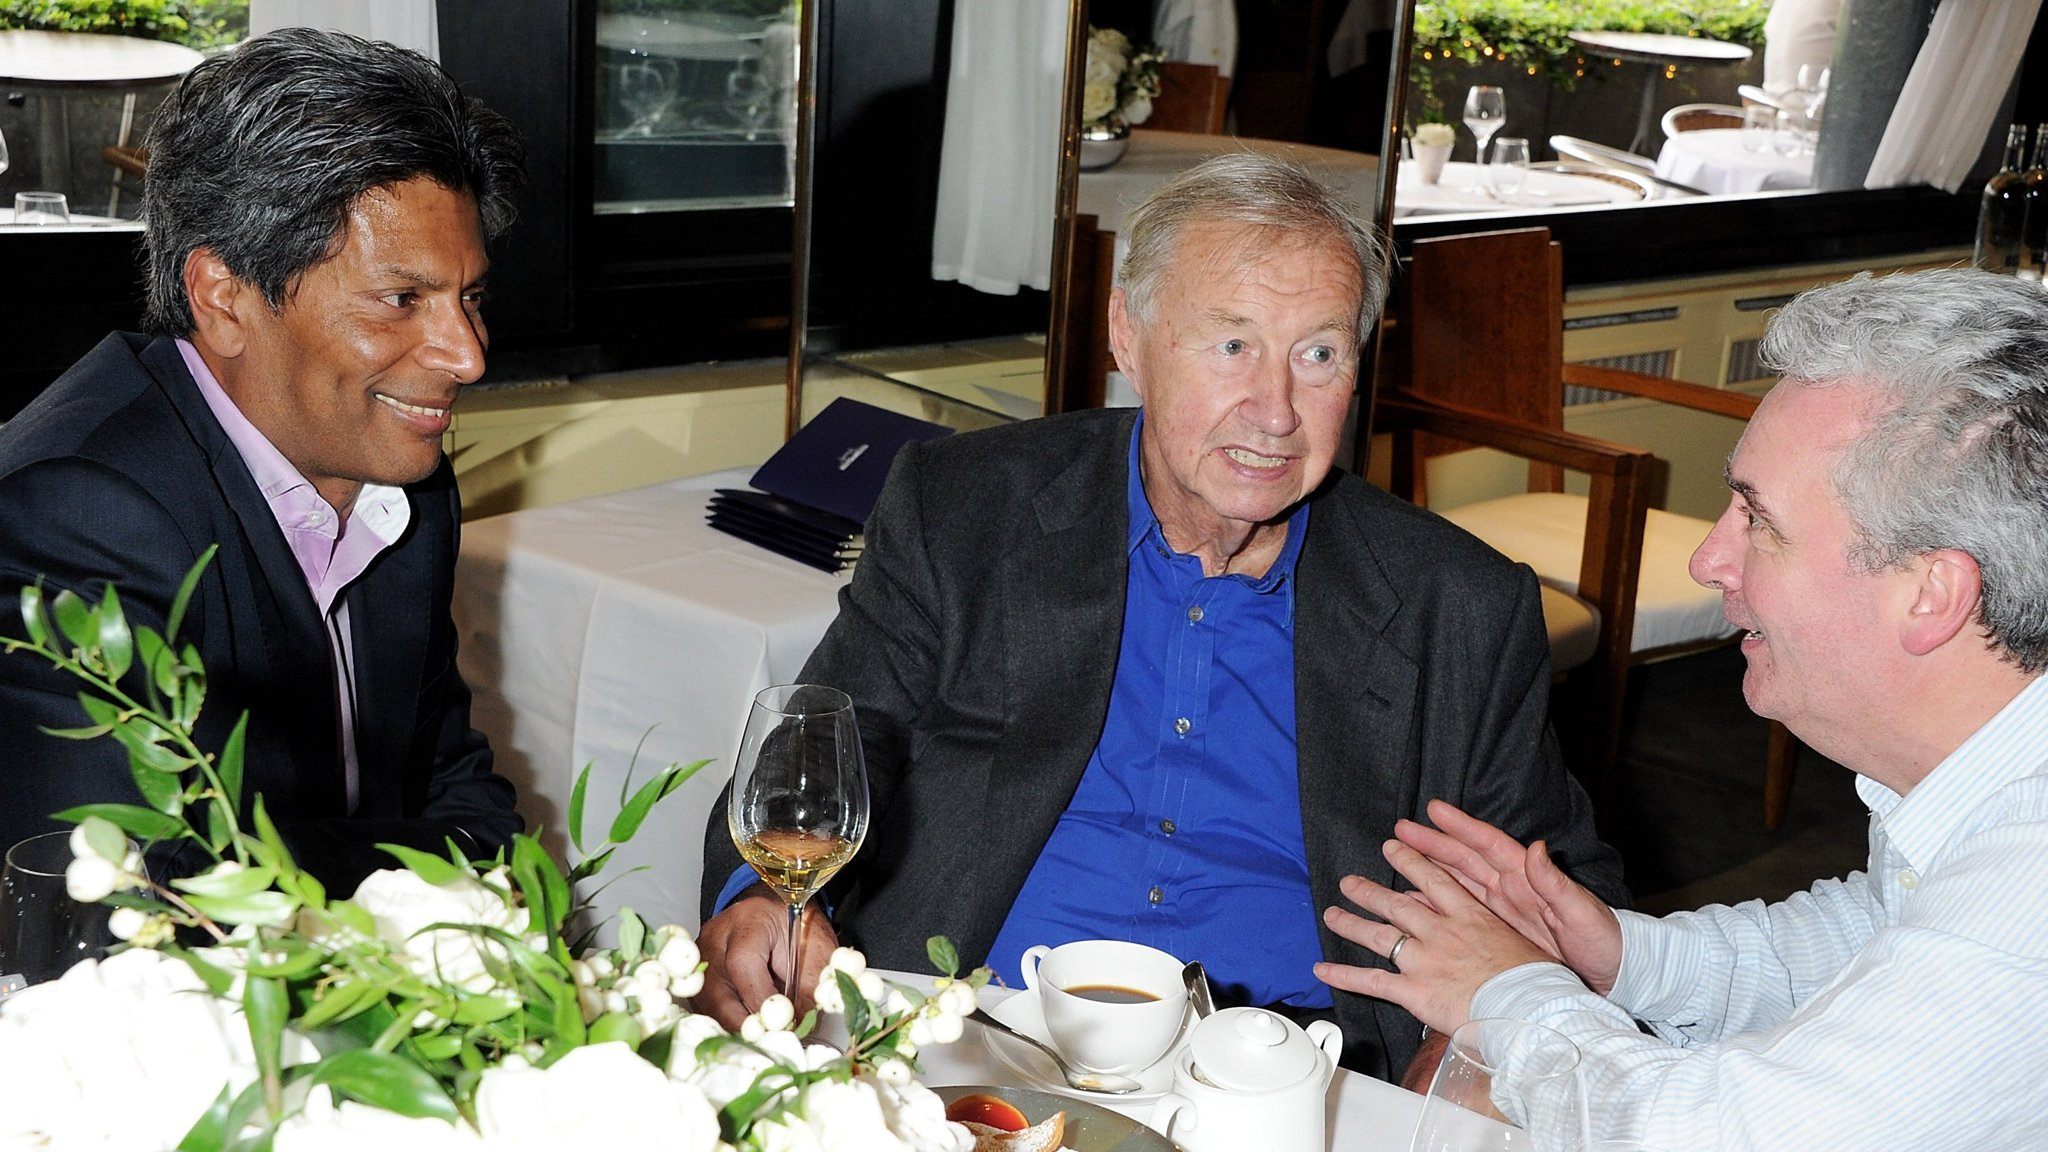 Sir Terence Conran Fights Off Claim From Former Business Partner